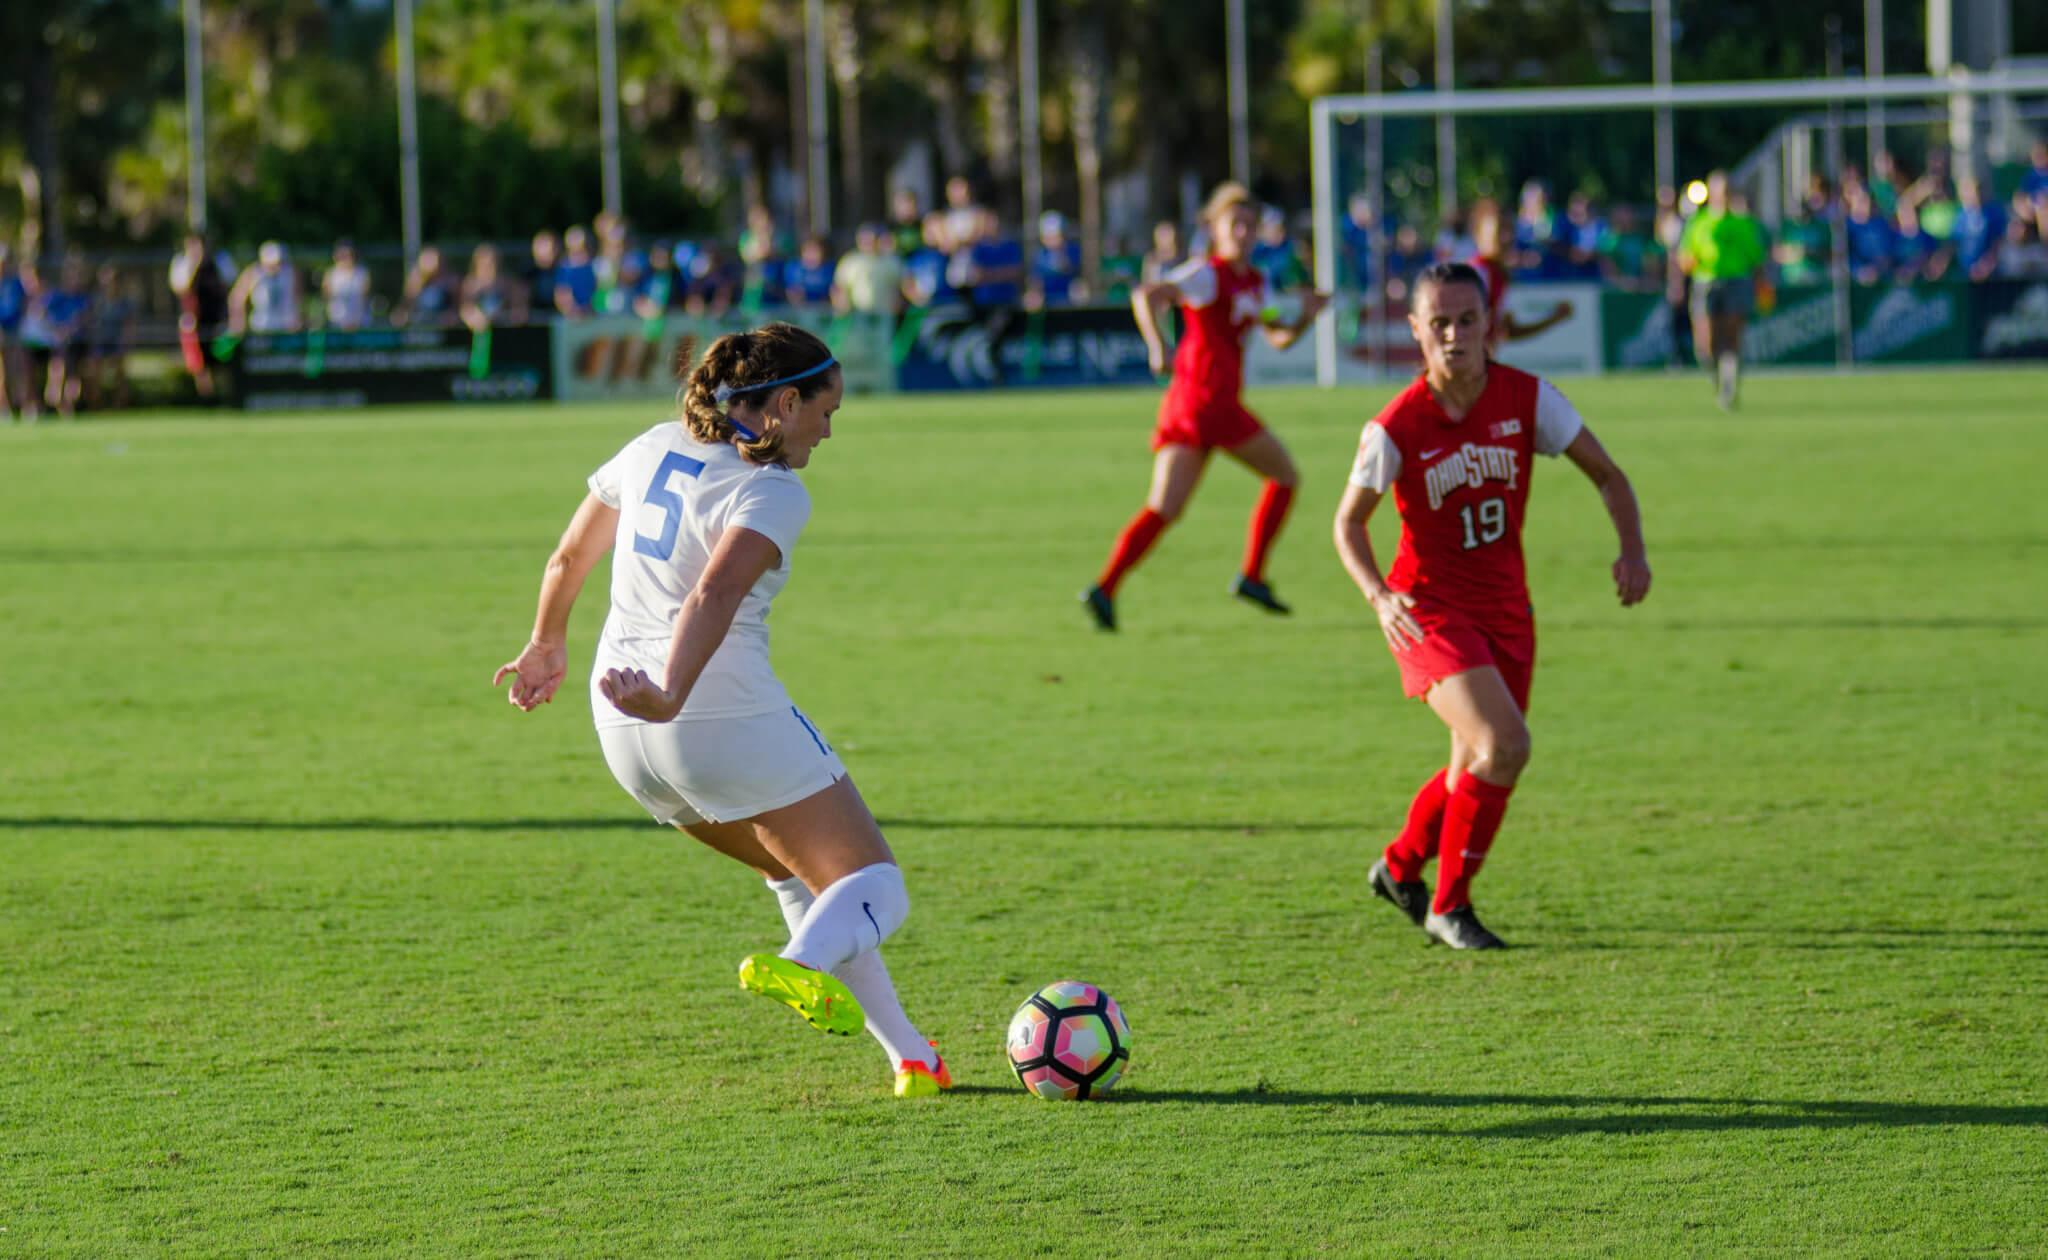 FGCU women's soccer wins second straight with 2-0 victory over St. Bonaventure